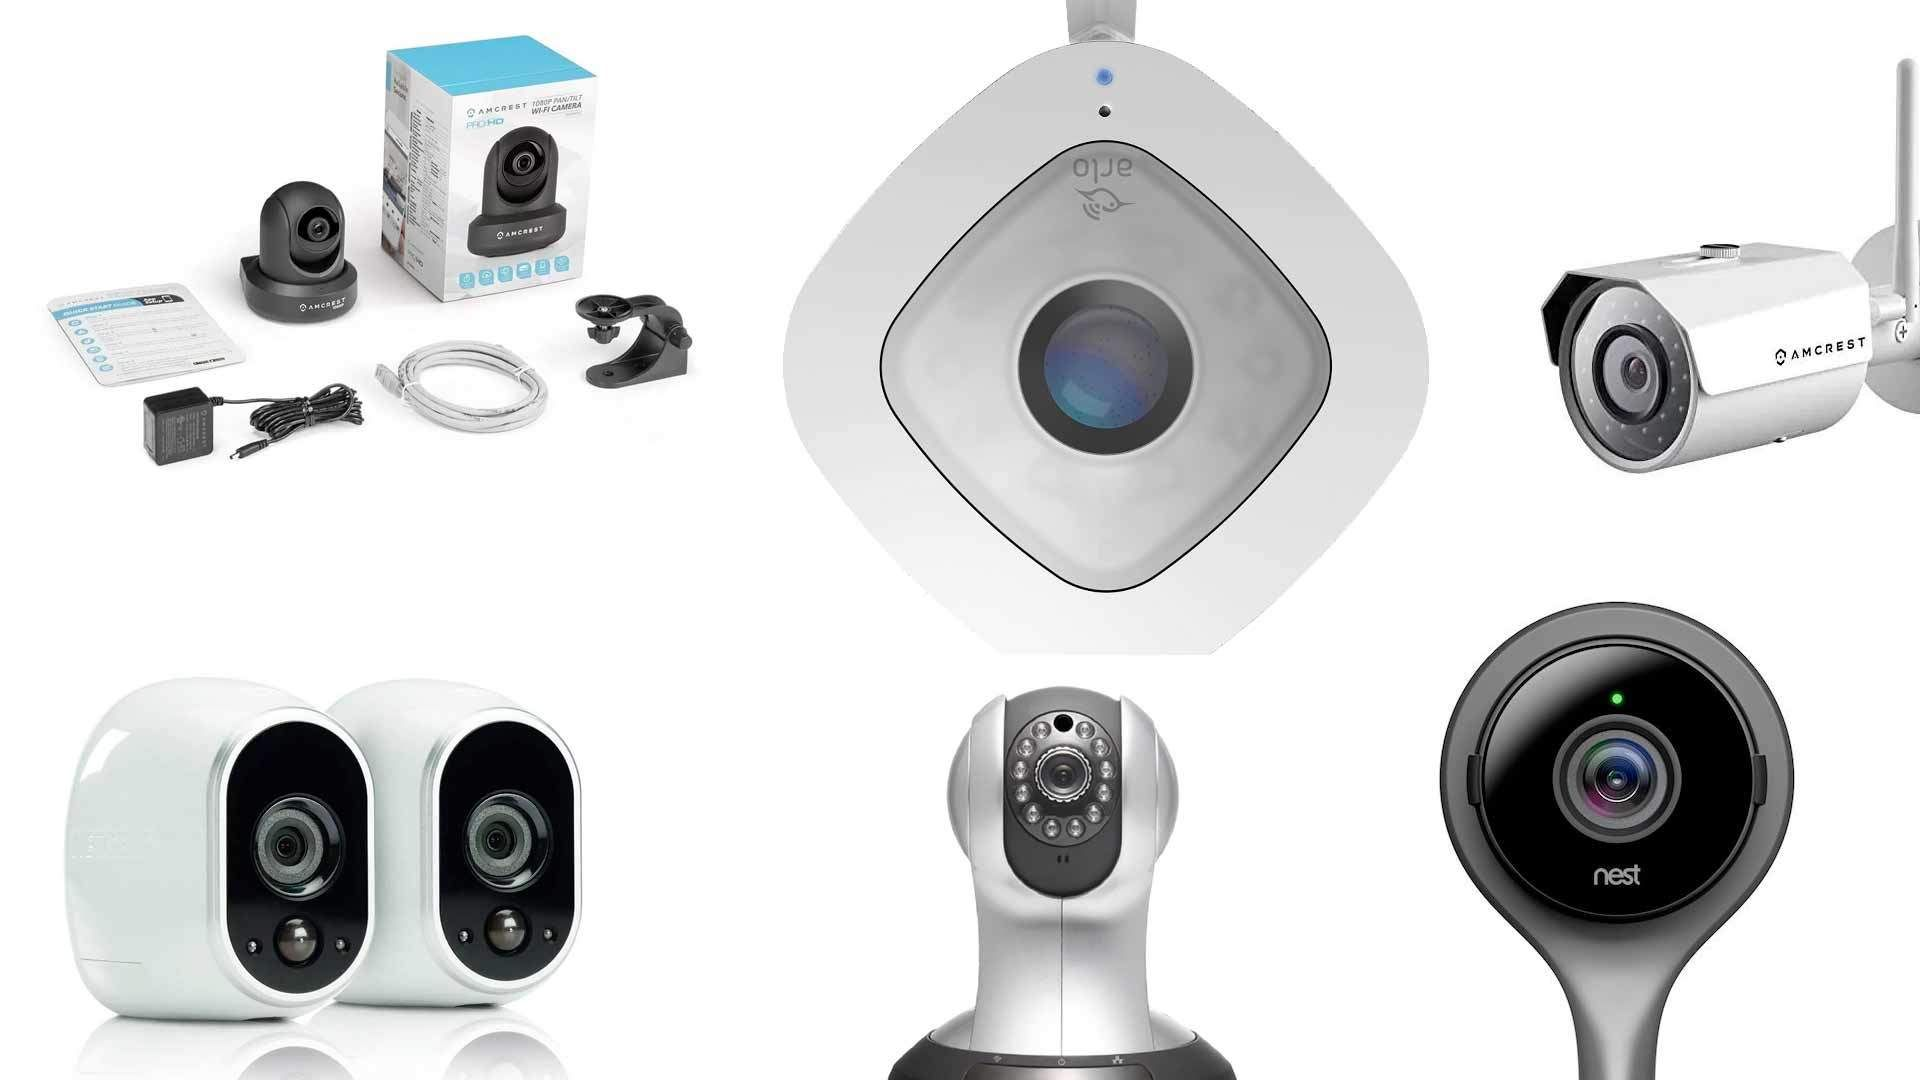 Top 10 Best Home Security Cameras Compare Buy Save Security Cameras Camera Wireless Home Security Security Cameras For Home Best Home Security Camera